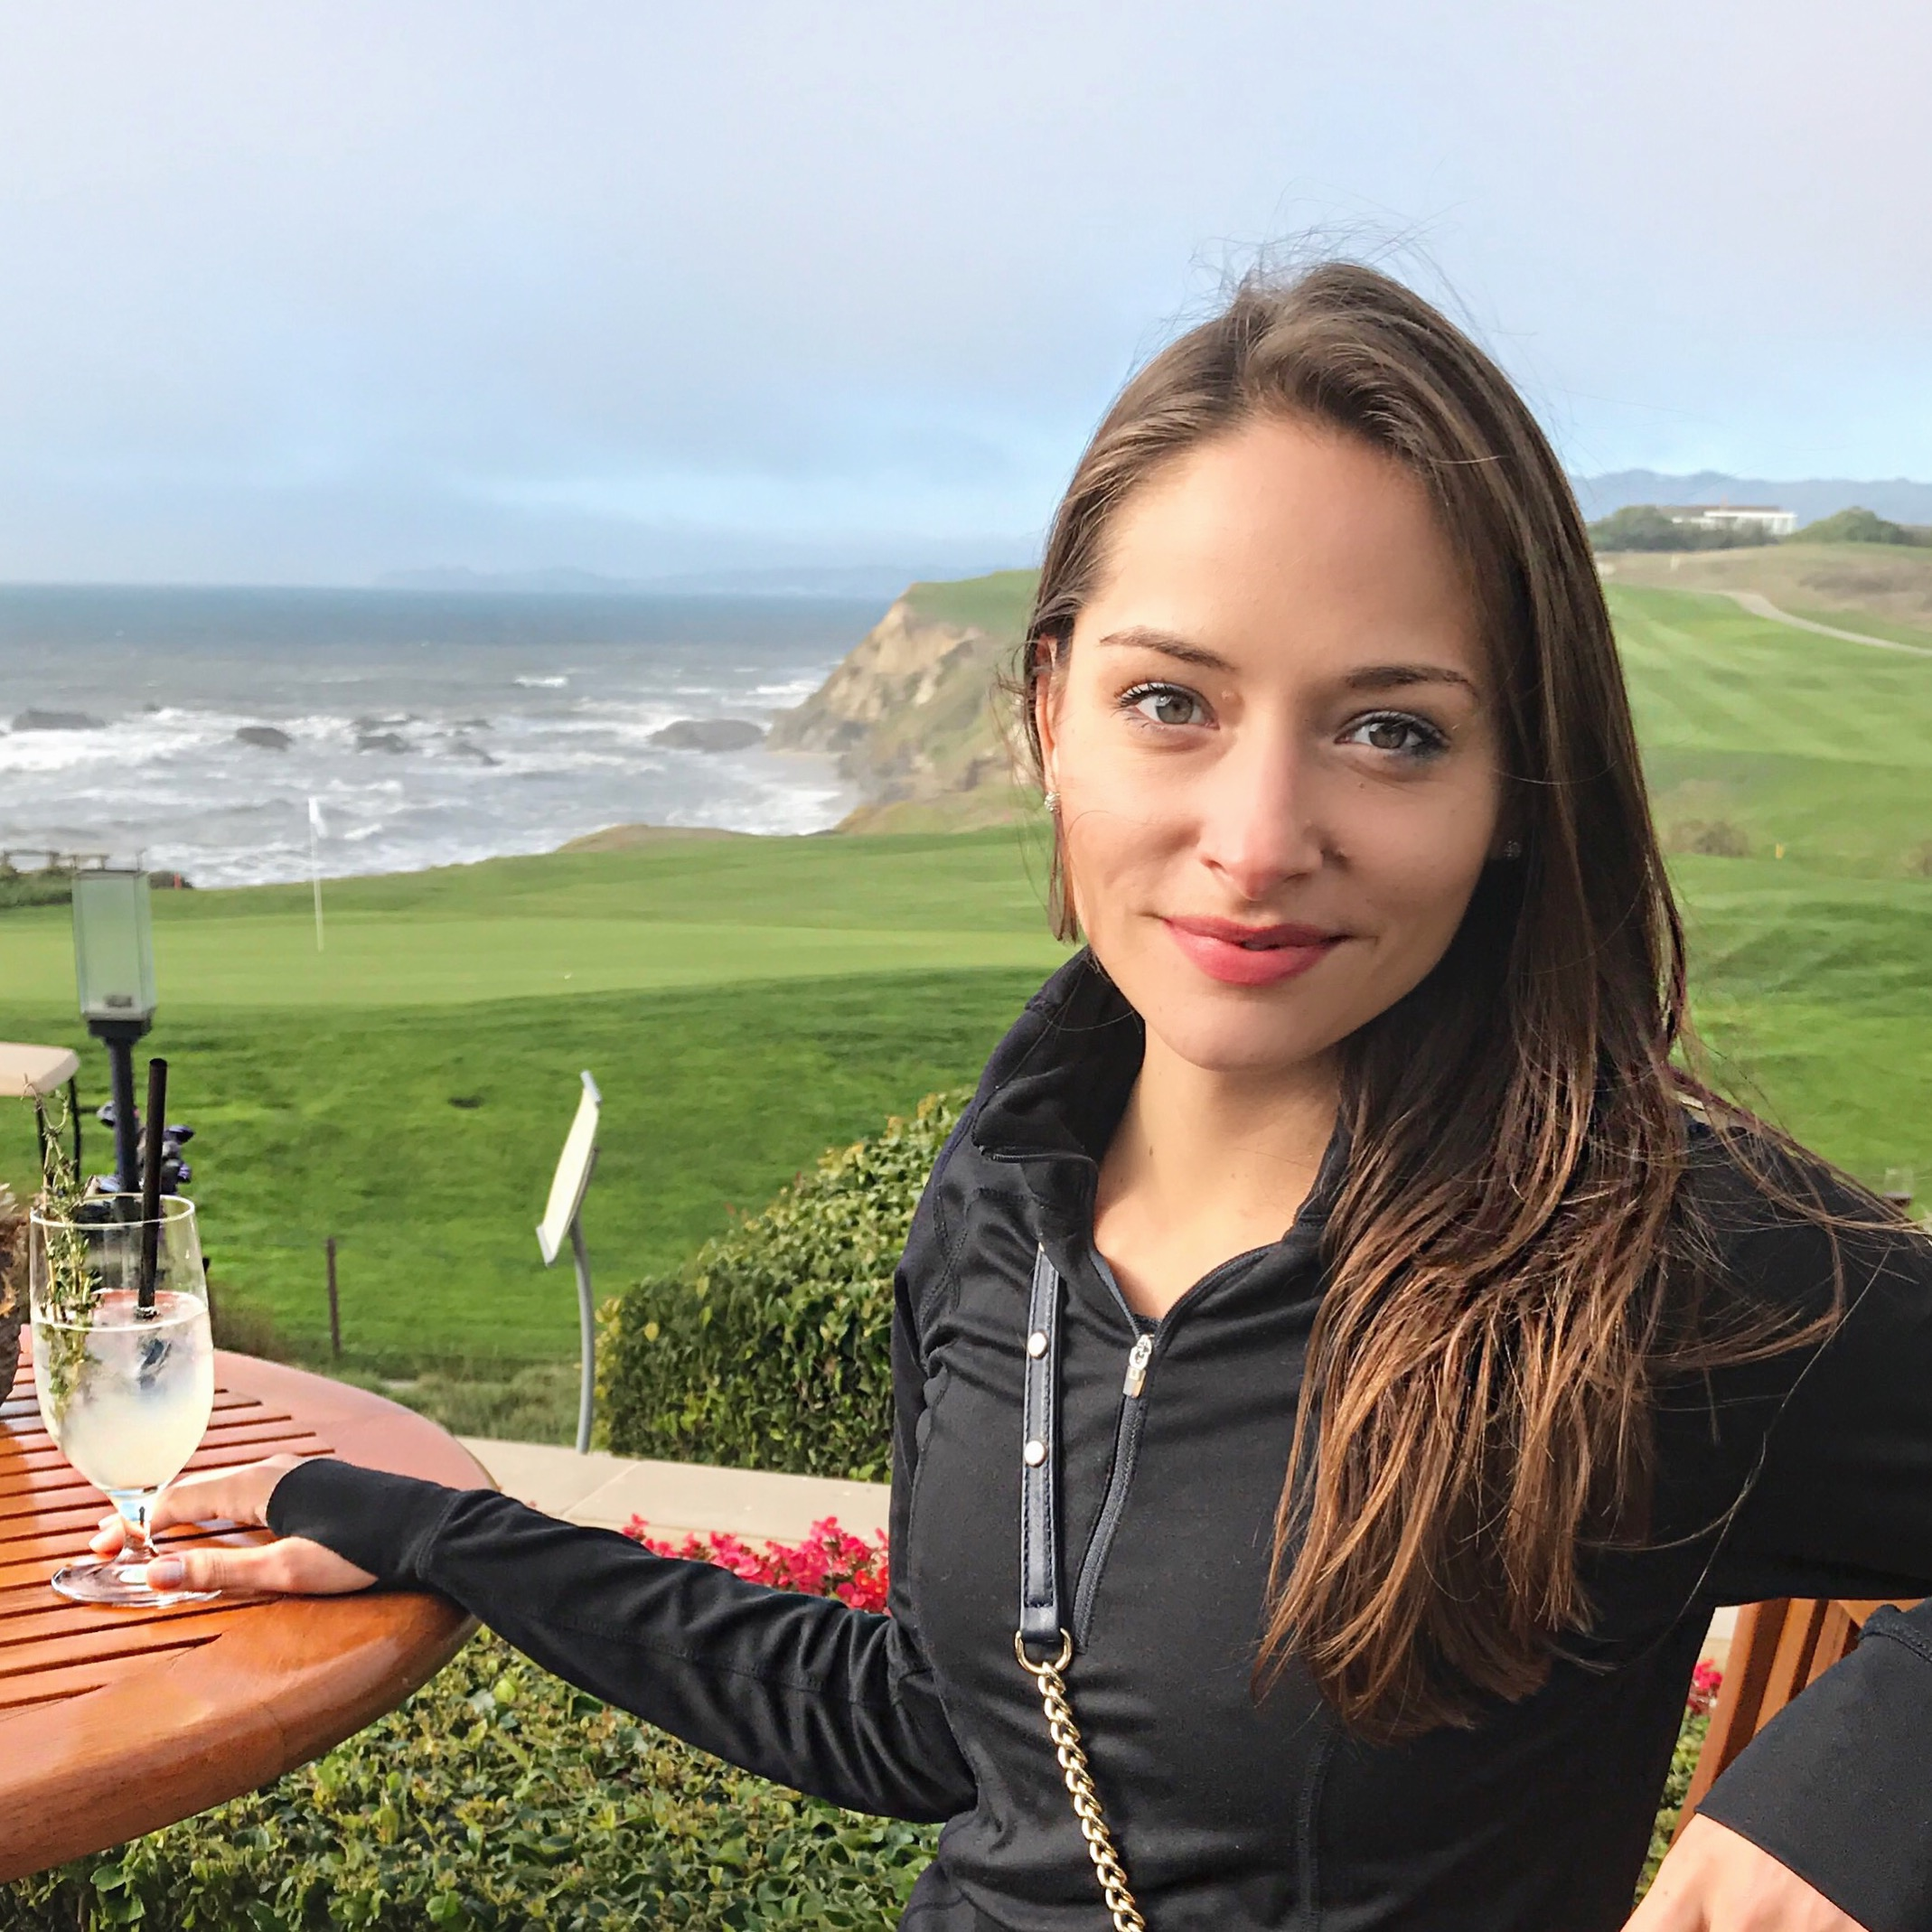 Highway 1 Stop: The Ritz-Carlton Half Moon Bay